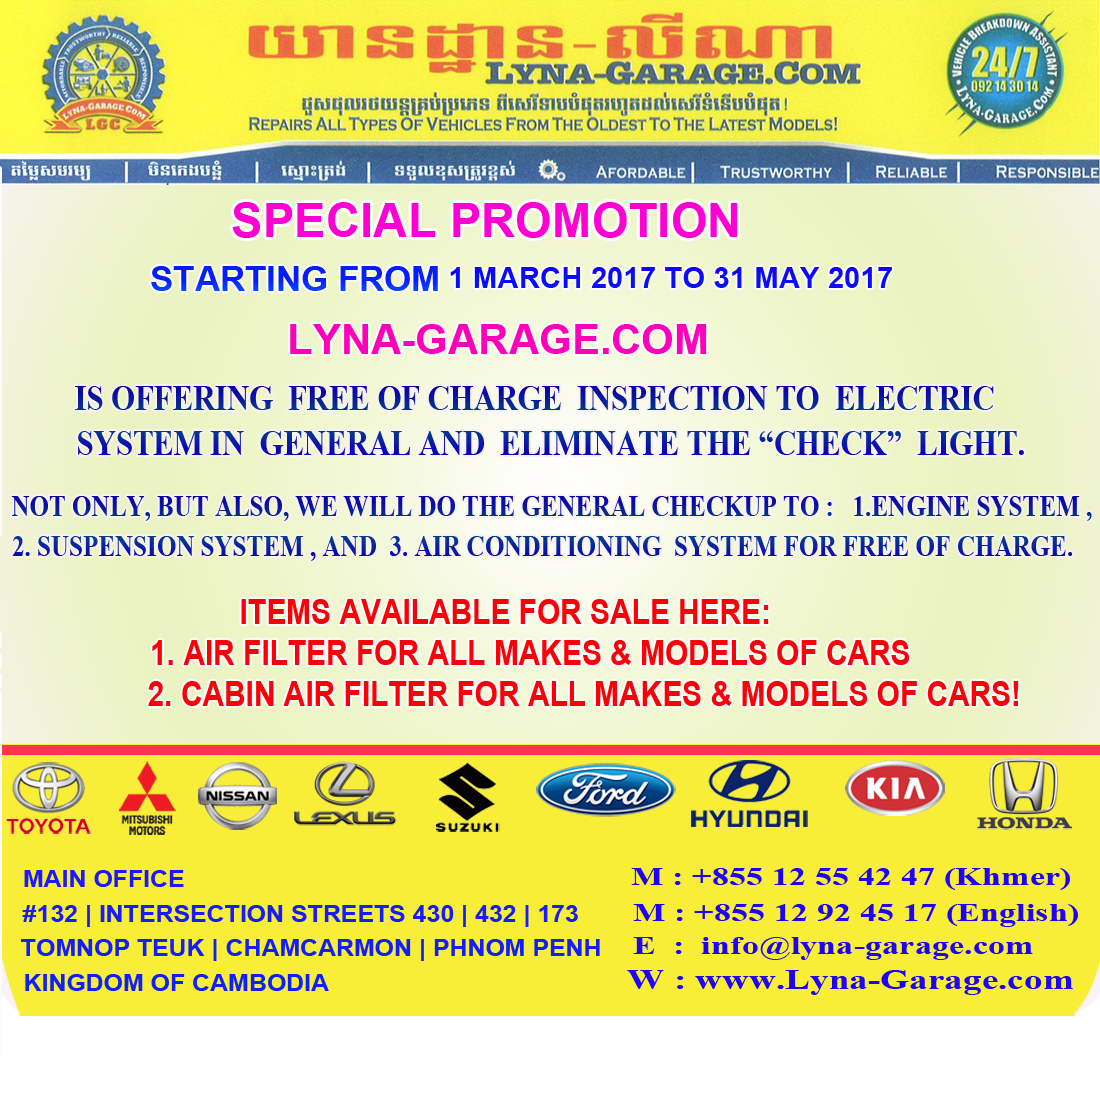 Special Promotion From Lyna-Garage.com